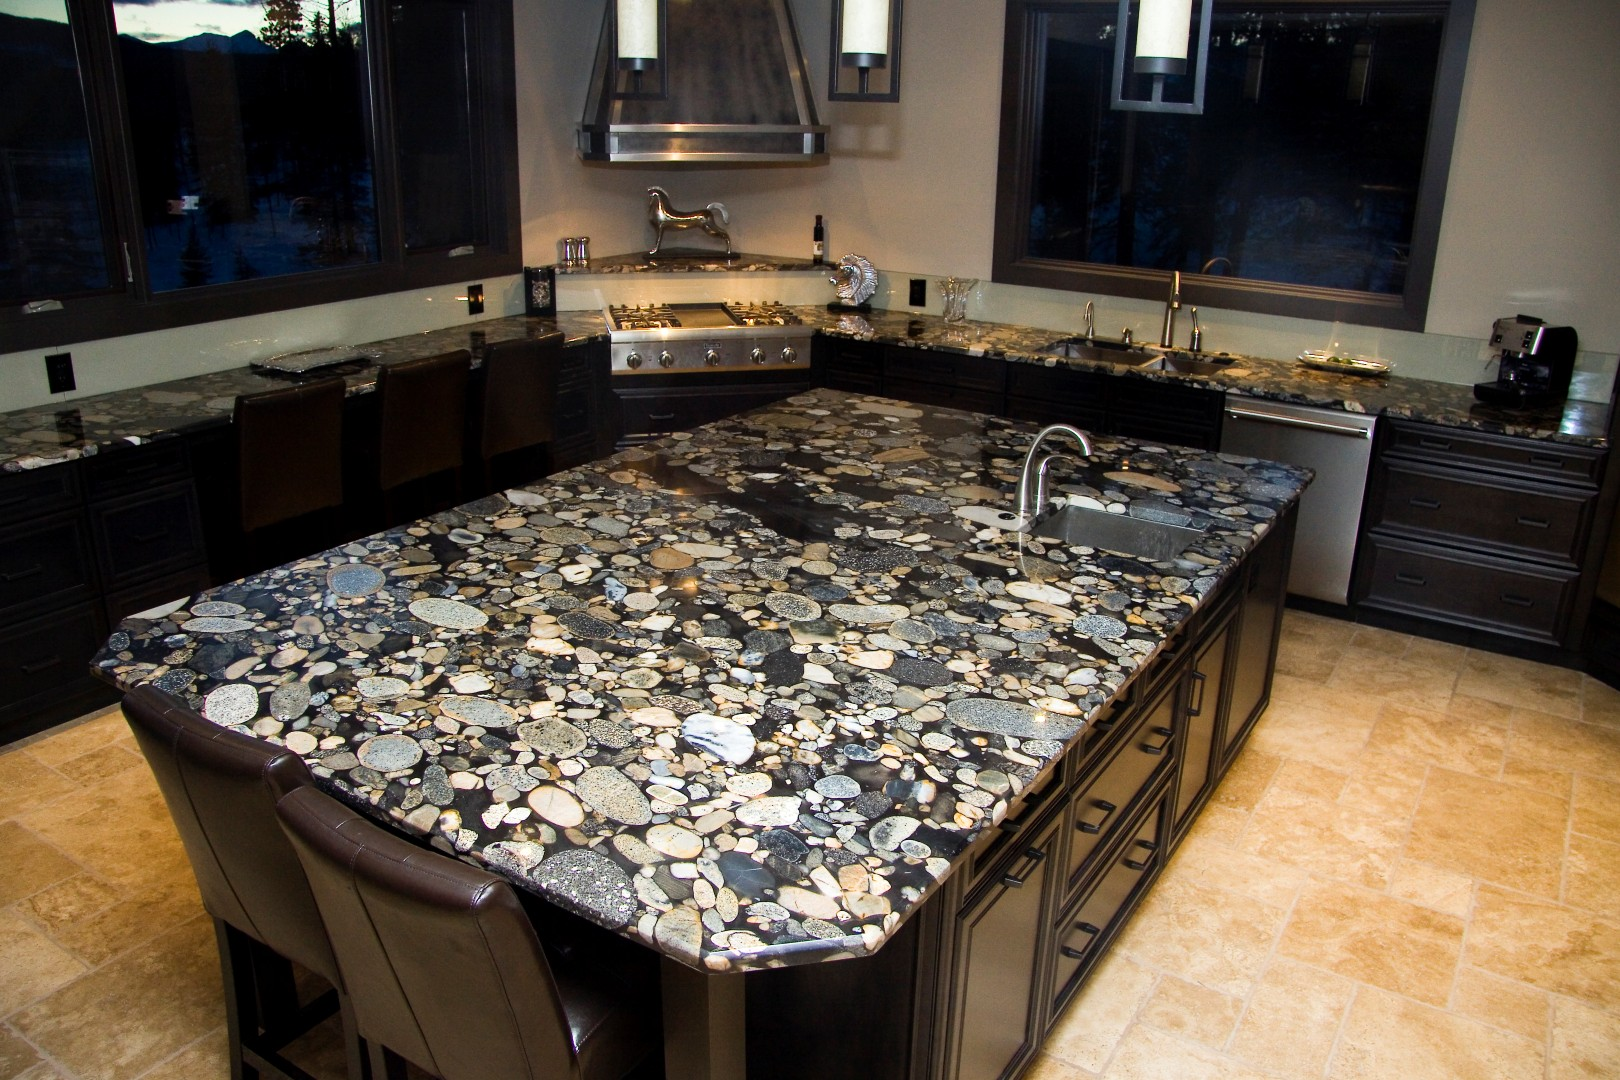 Granite Counter Tops : Gorgeous inspiring images of granite countertops homesfeed